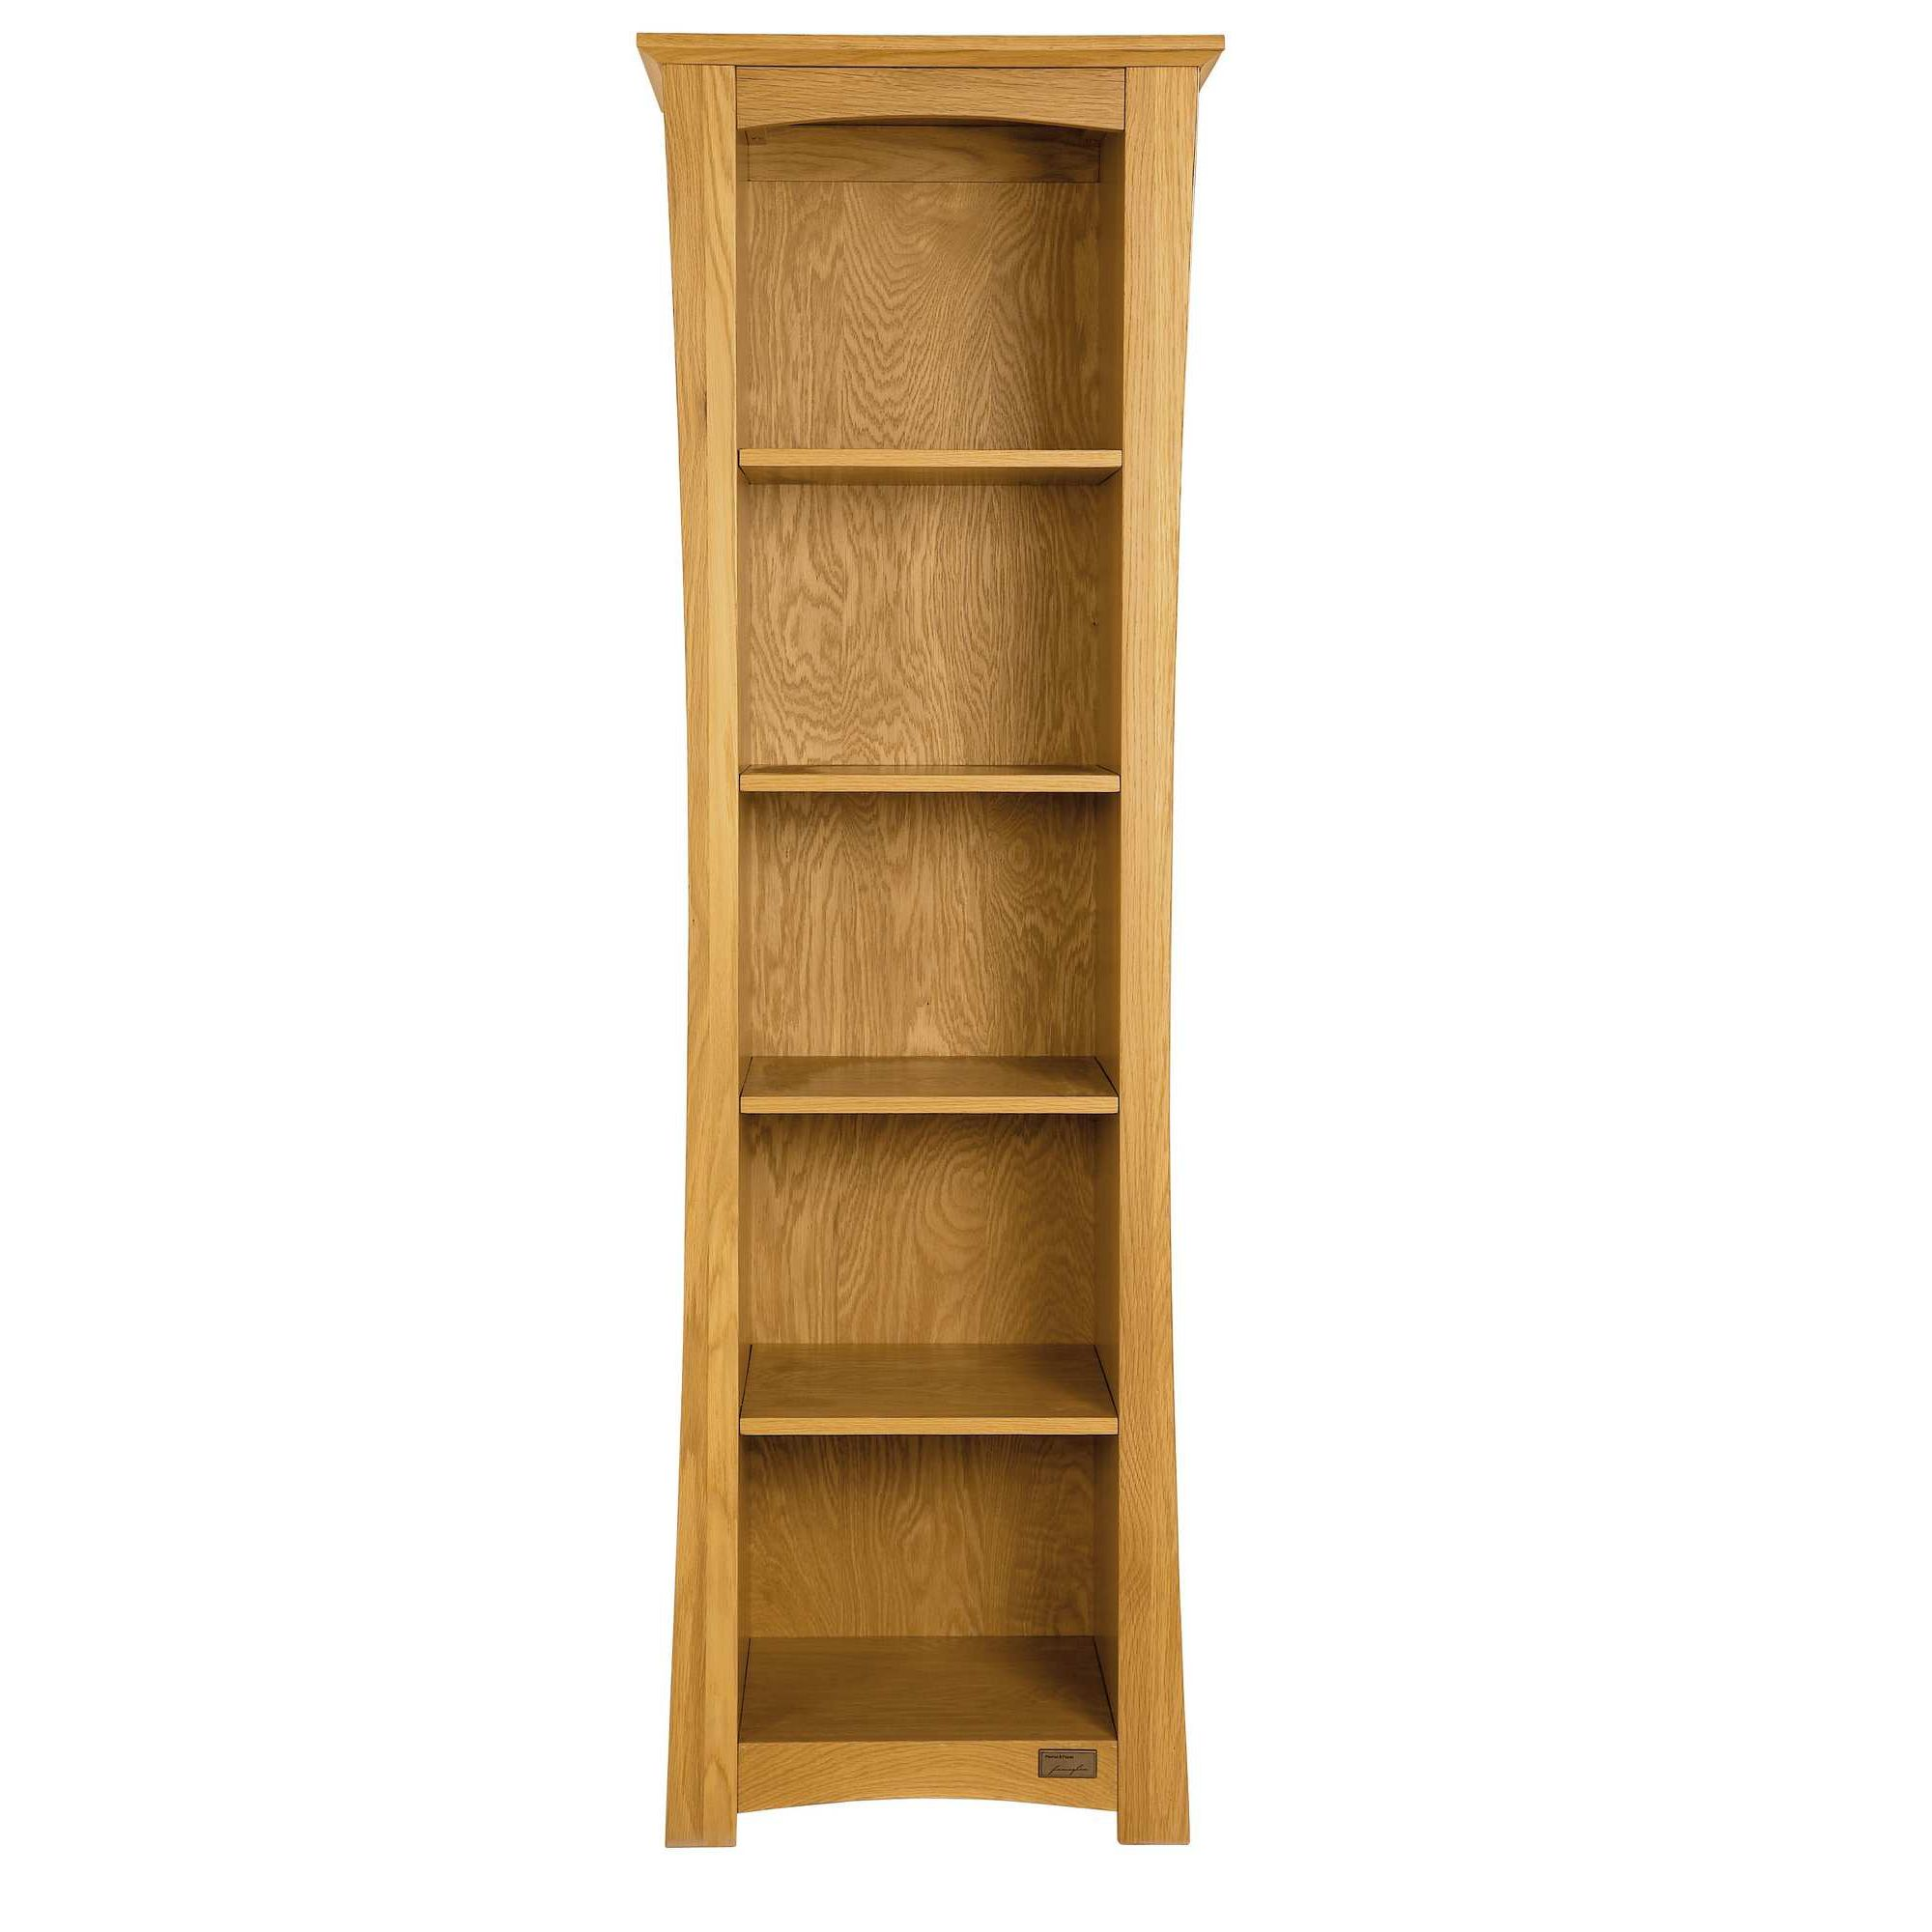 Mamas & Papas - Ocean Bookcase - Golden Oak at Tesco Direct